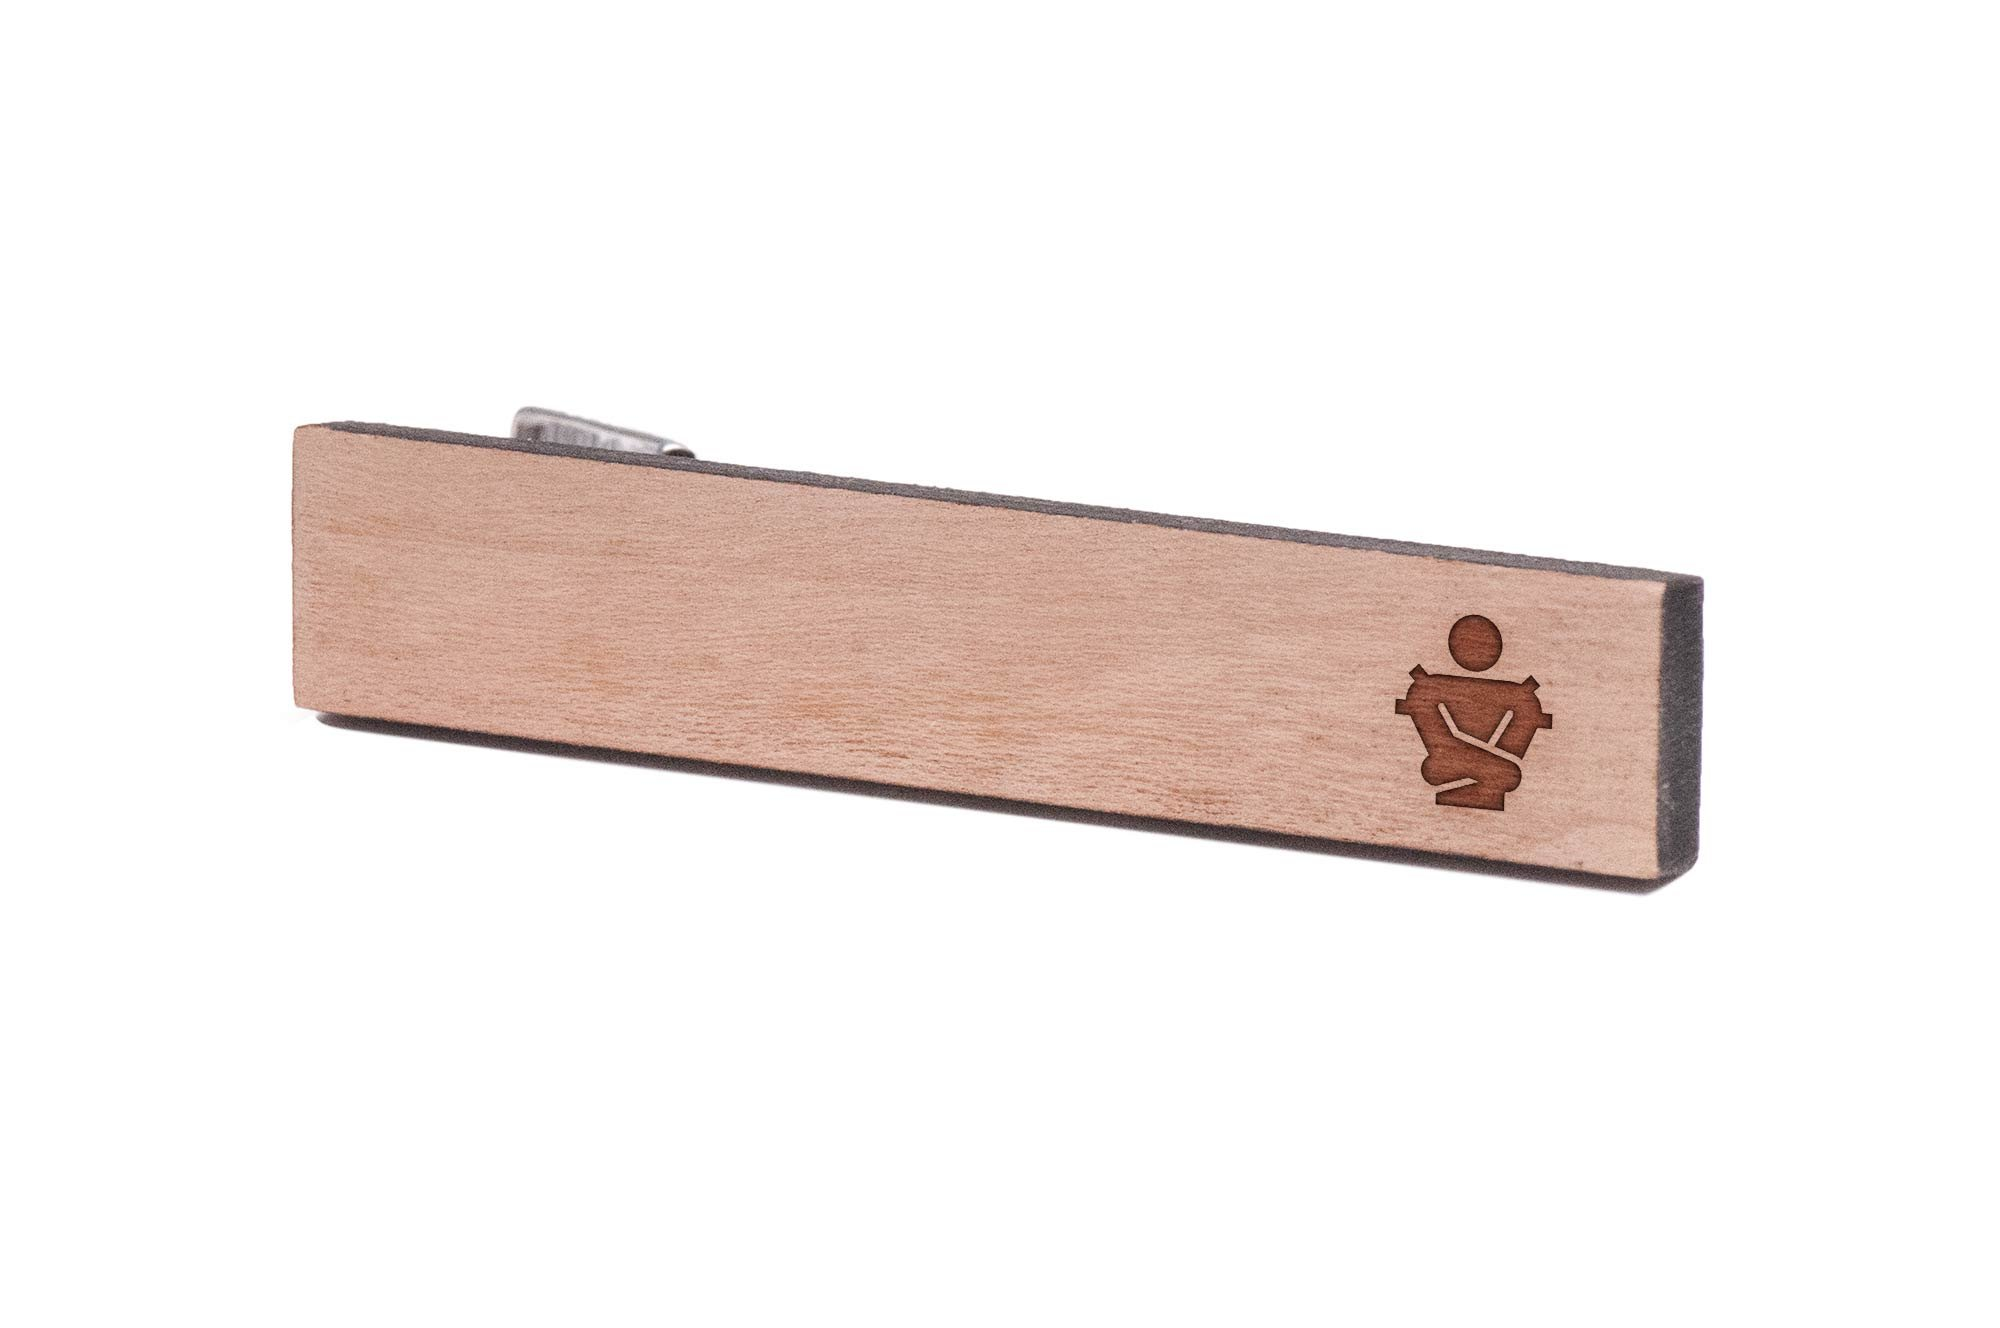 WOODEN ACCESSORIES COMPANY Wooden Tie Clips With Laser Engraved Straightjacket Design - Cherry Wood Tie Bar Engraved In The USA